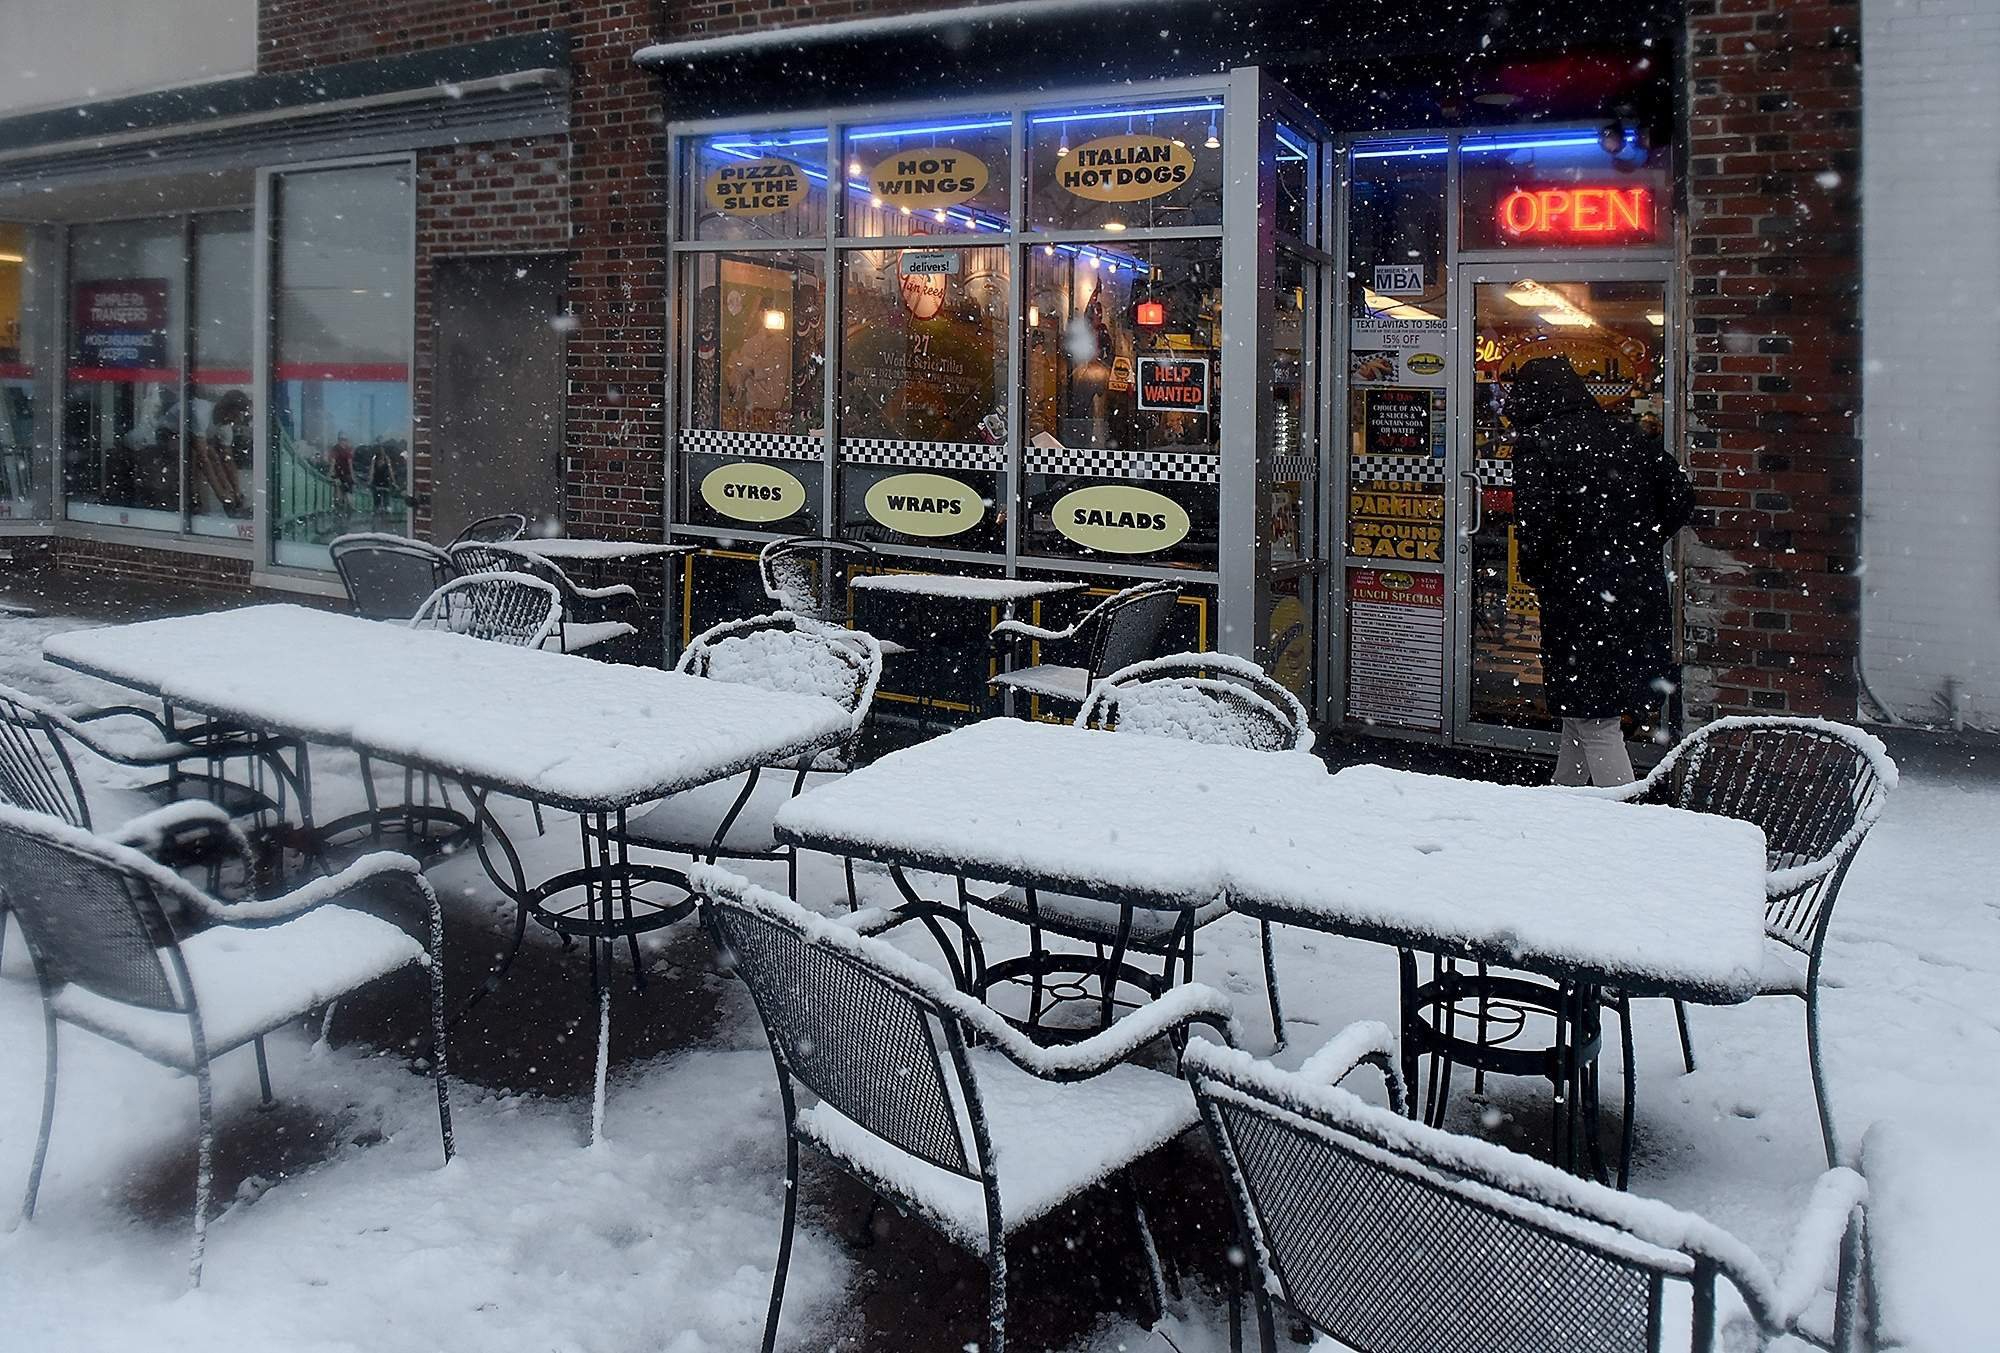 Erin Kyler, of Moorestown, heads into Lavita???s Pizzeria in moorestown, to pick up dinner for her family as the heavy snow comes down, Wednesday, March 7, 2018. [NANCY ROKOS / STAFF PHOTOJOURNALIST]